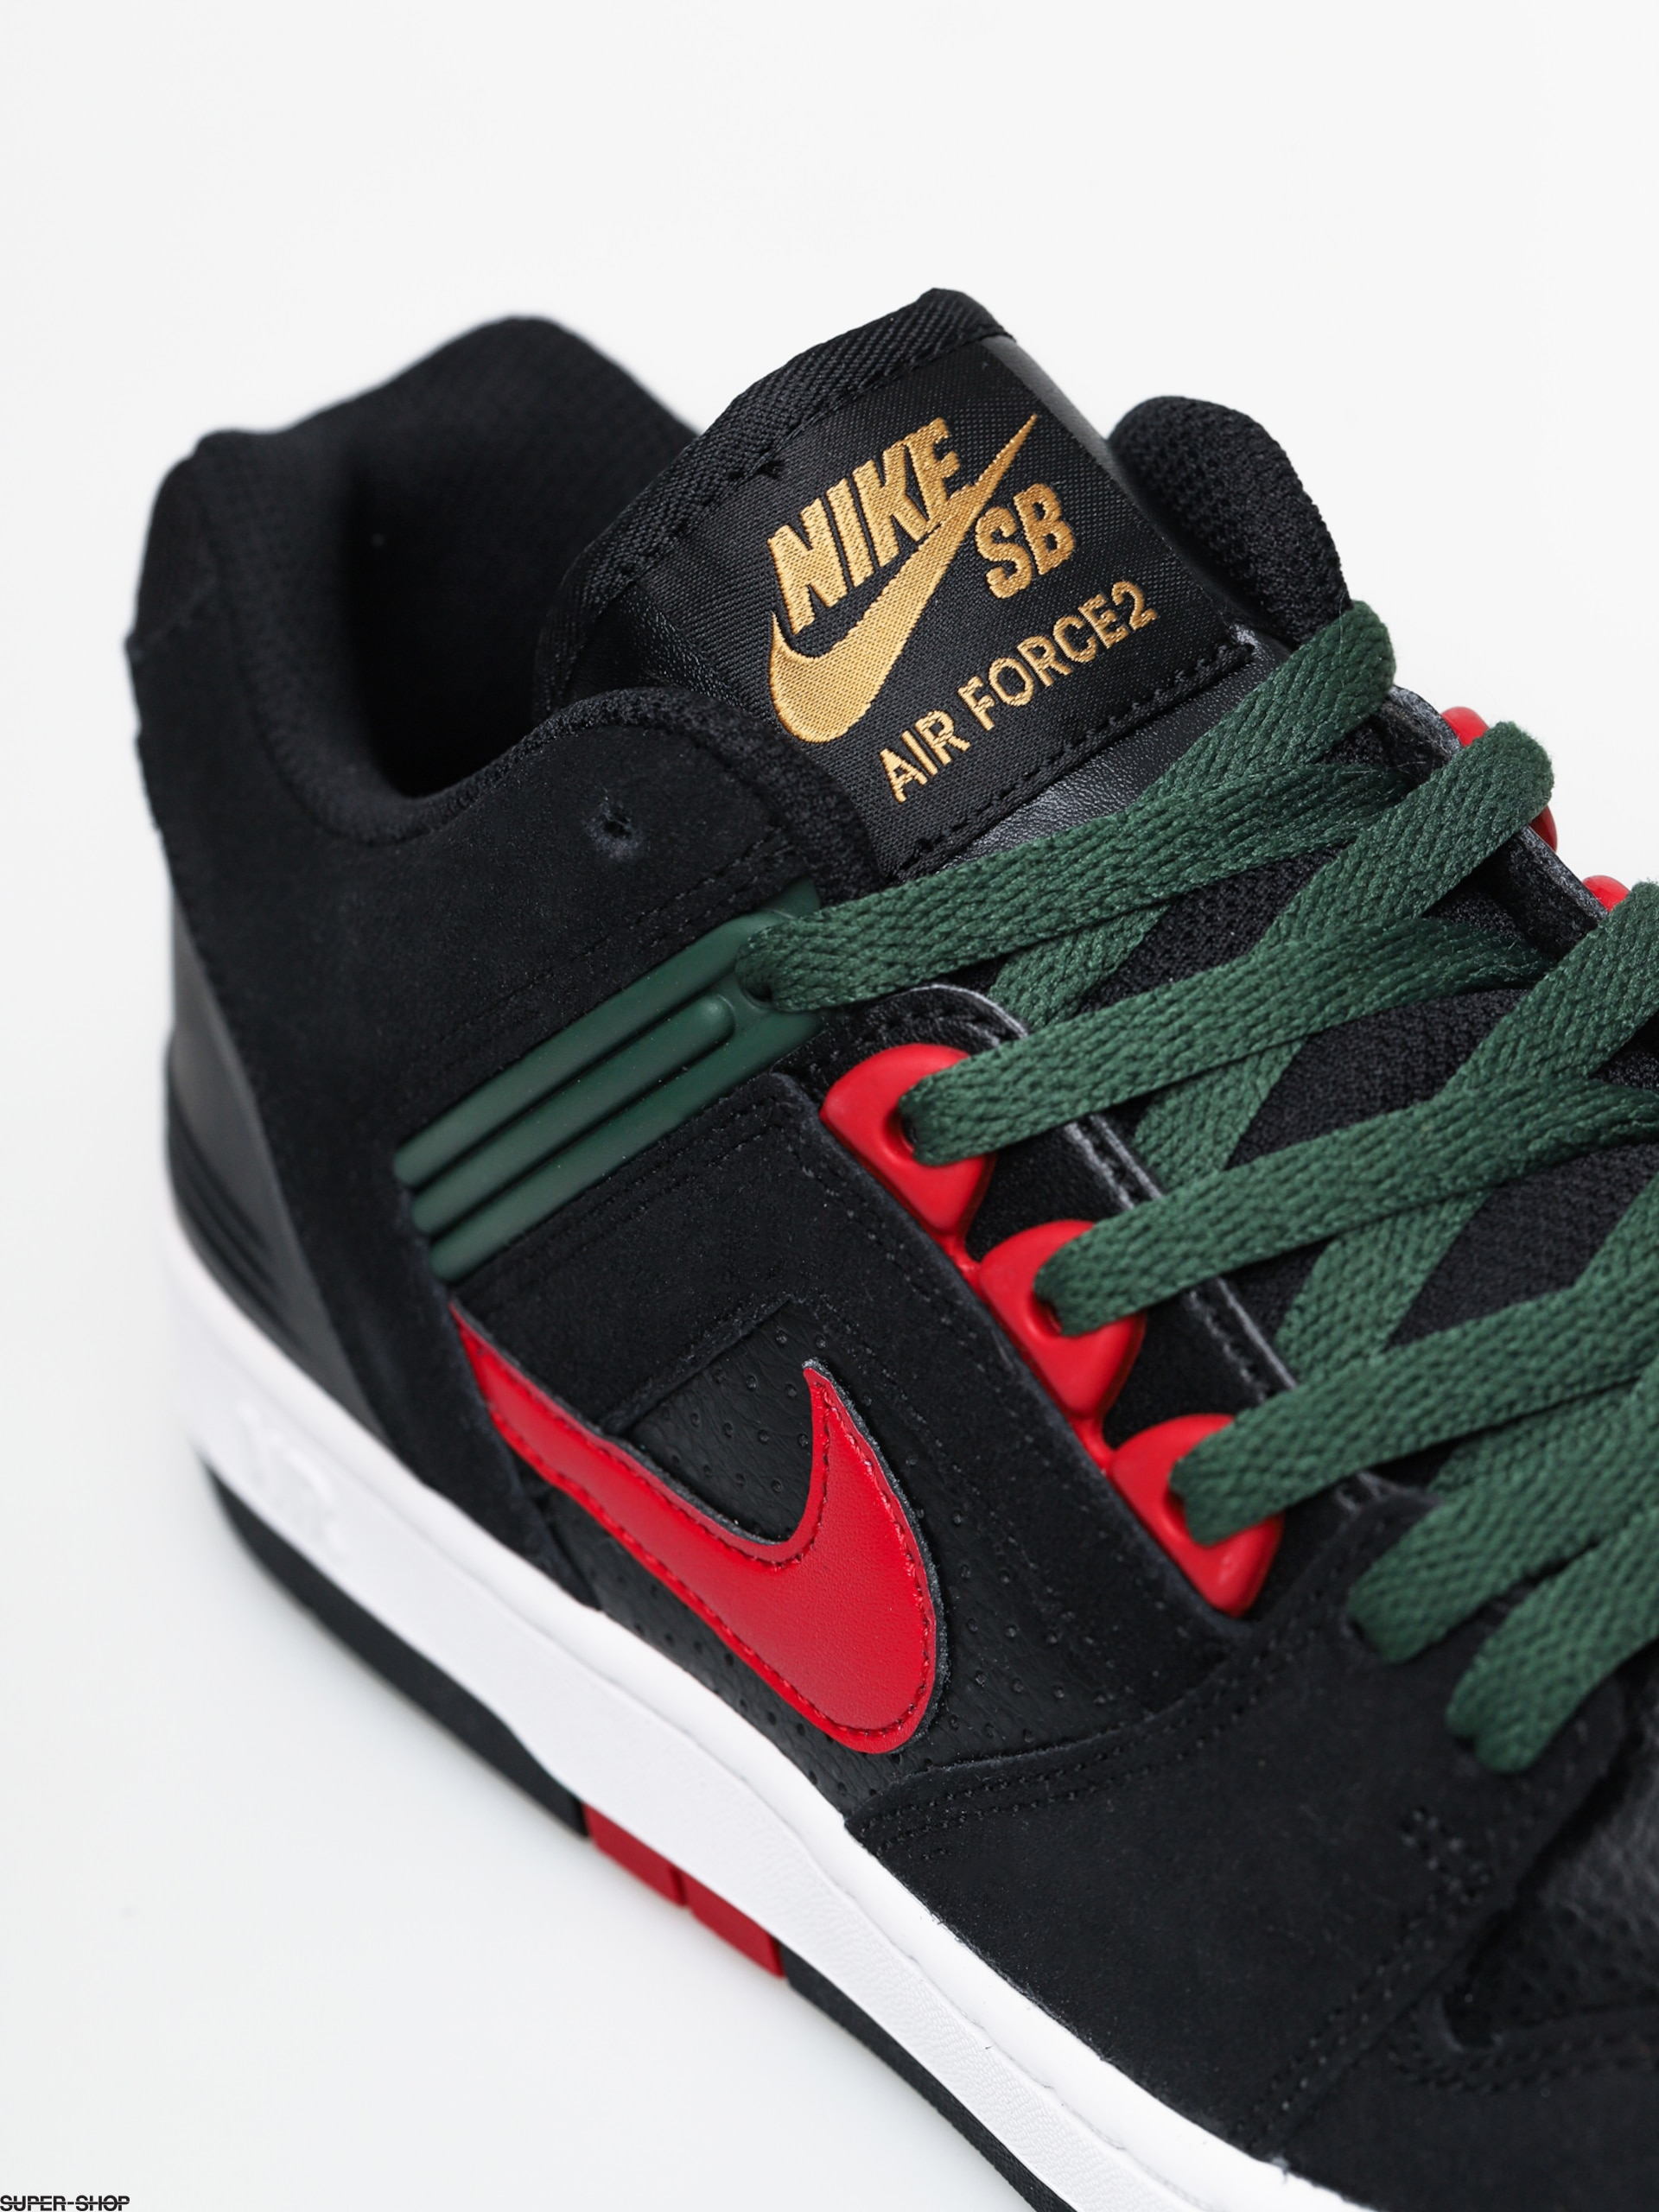 Misión Firmar primer ministro  Nike SB Air Force II Low Shoes (black/gym red deep forest)